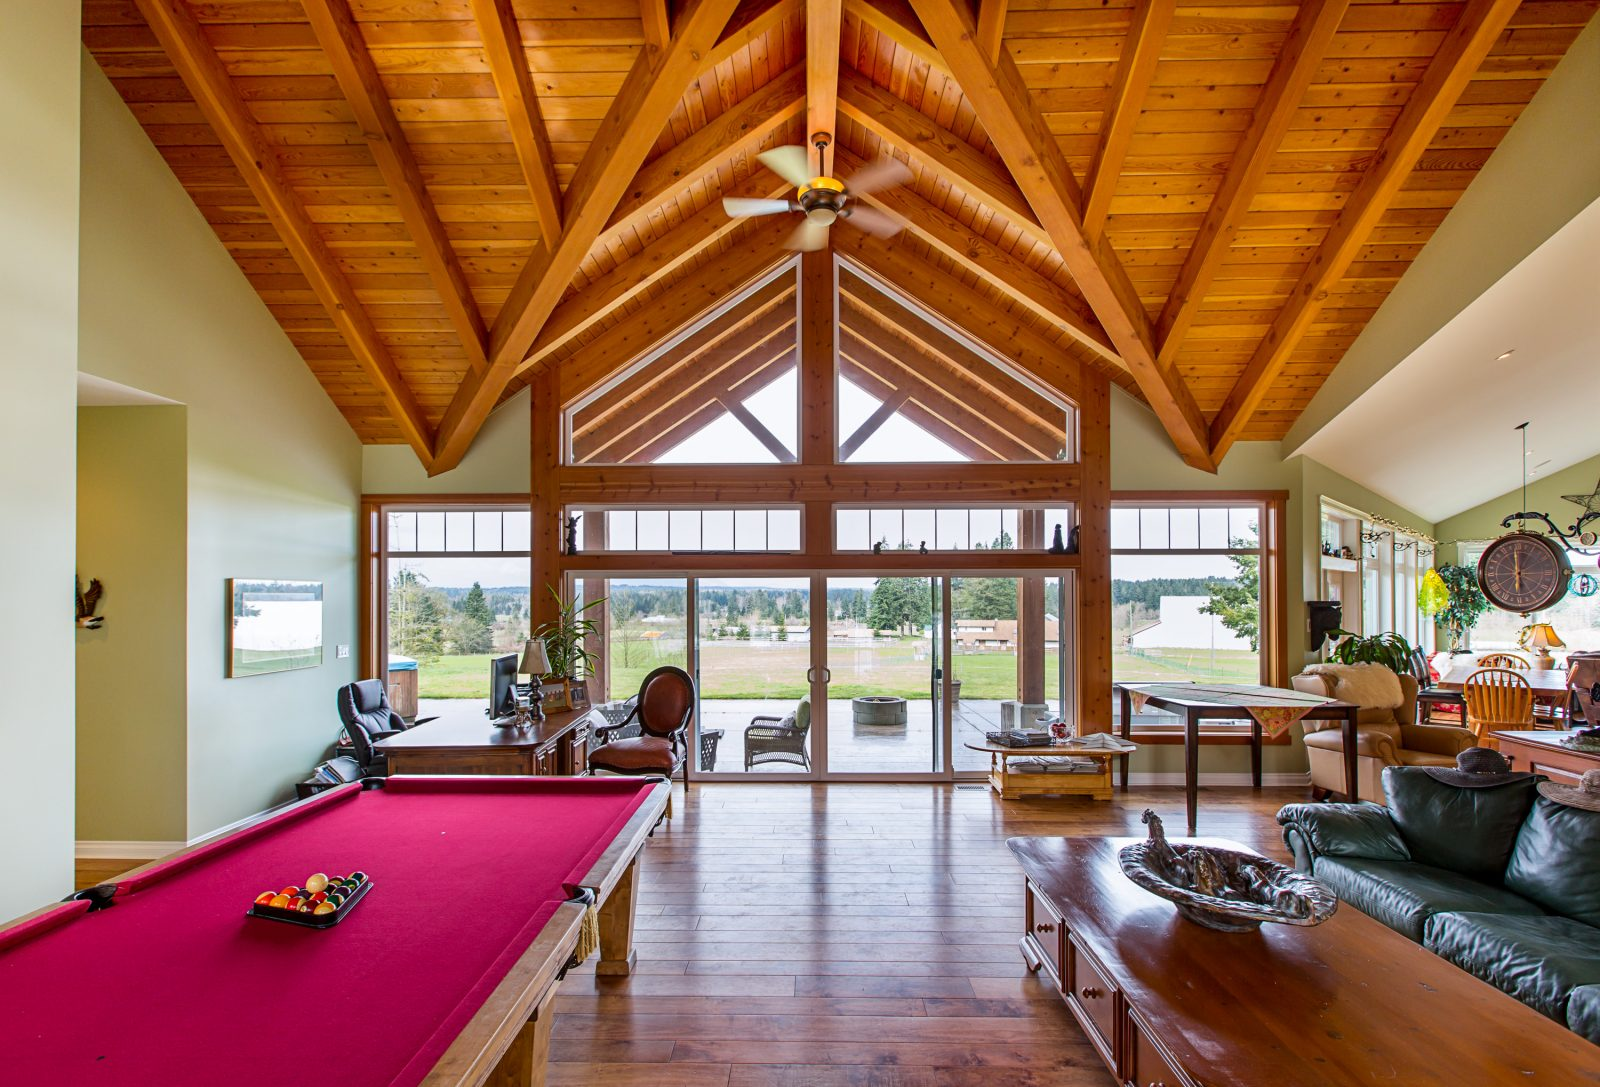 Newly renovated home with wooden beams and exposed wood vaulted ceilings